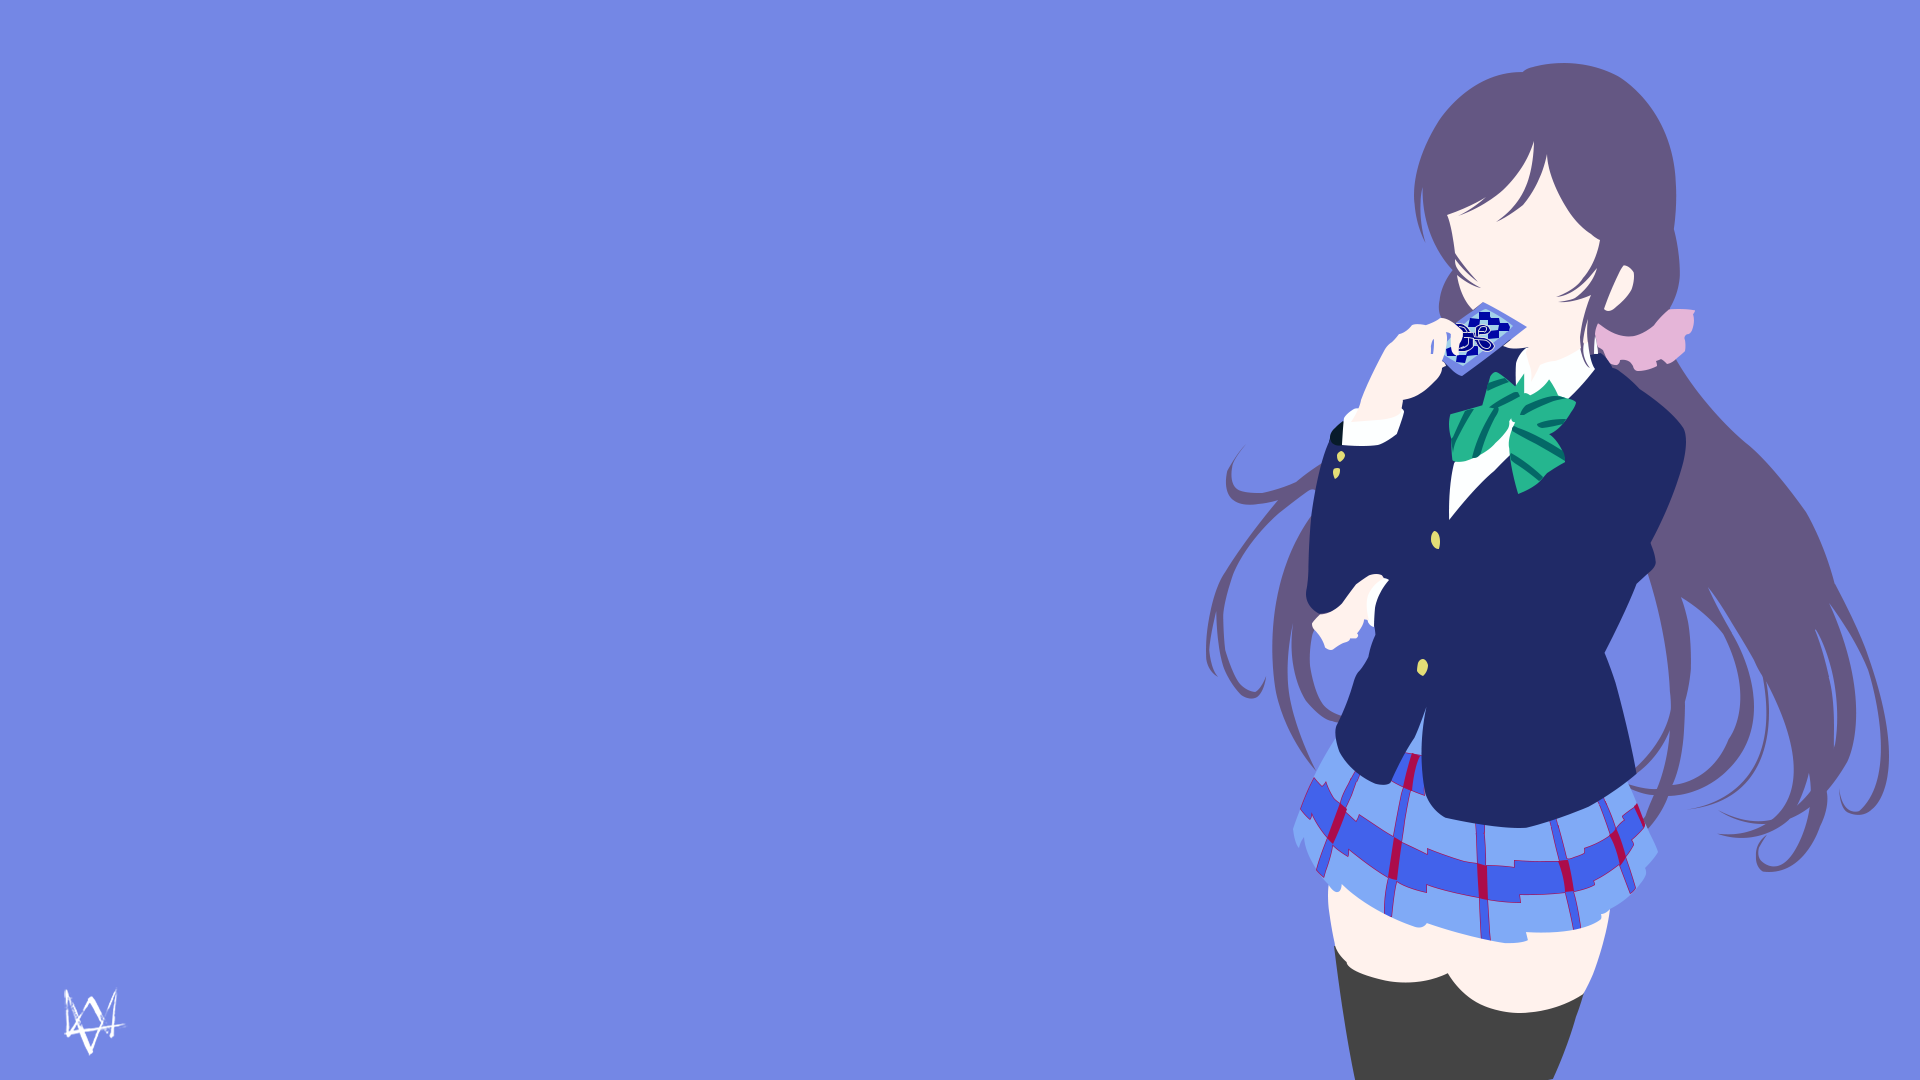 Nozomi Tojo (Love Live!) Minimalist Wallpaper by Lucifer012 on DeviantArt